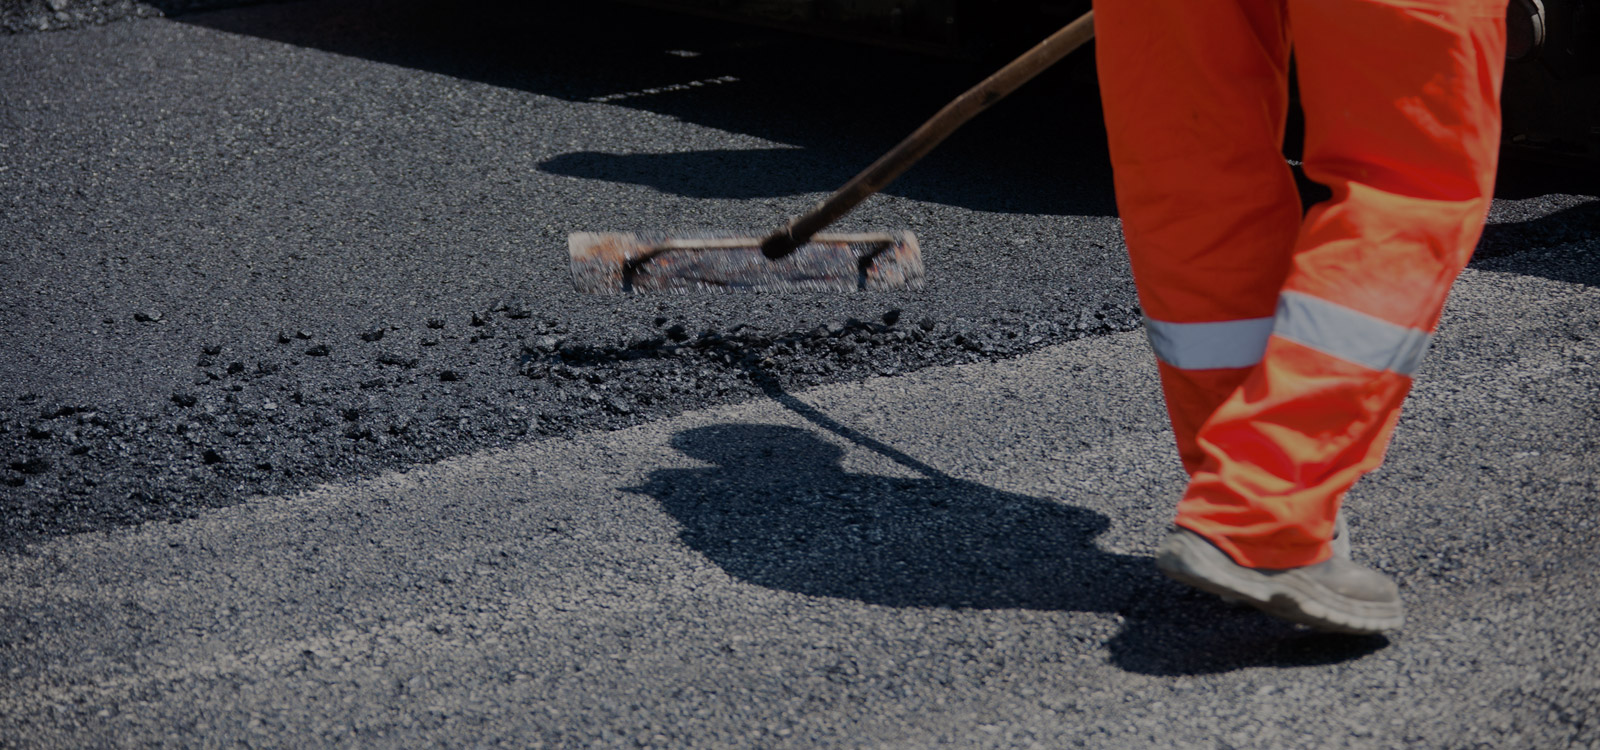 asphalt contractor flattening fresh pavement